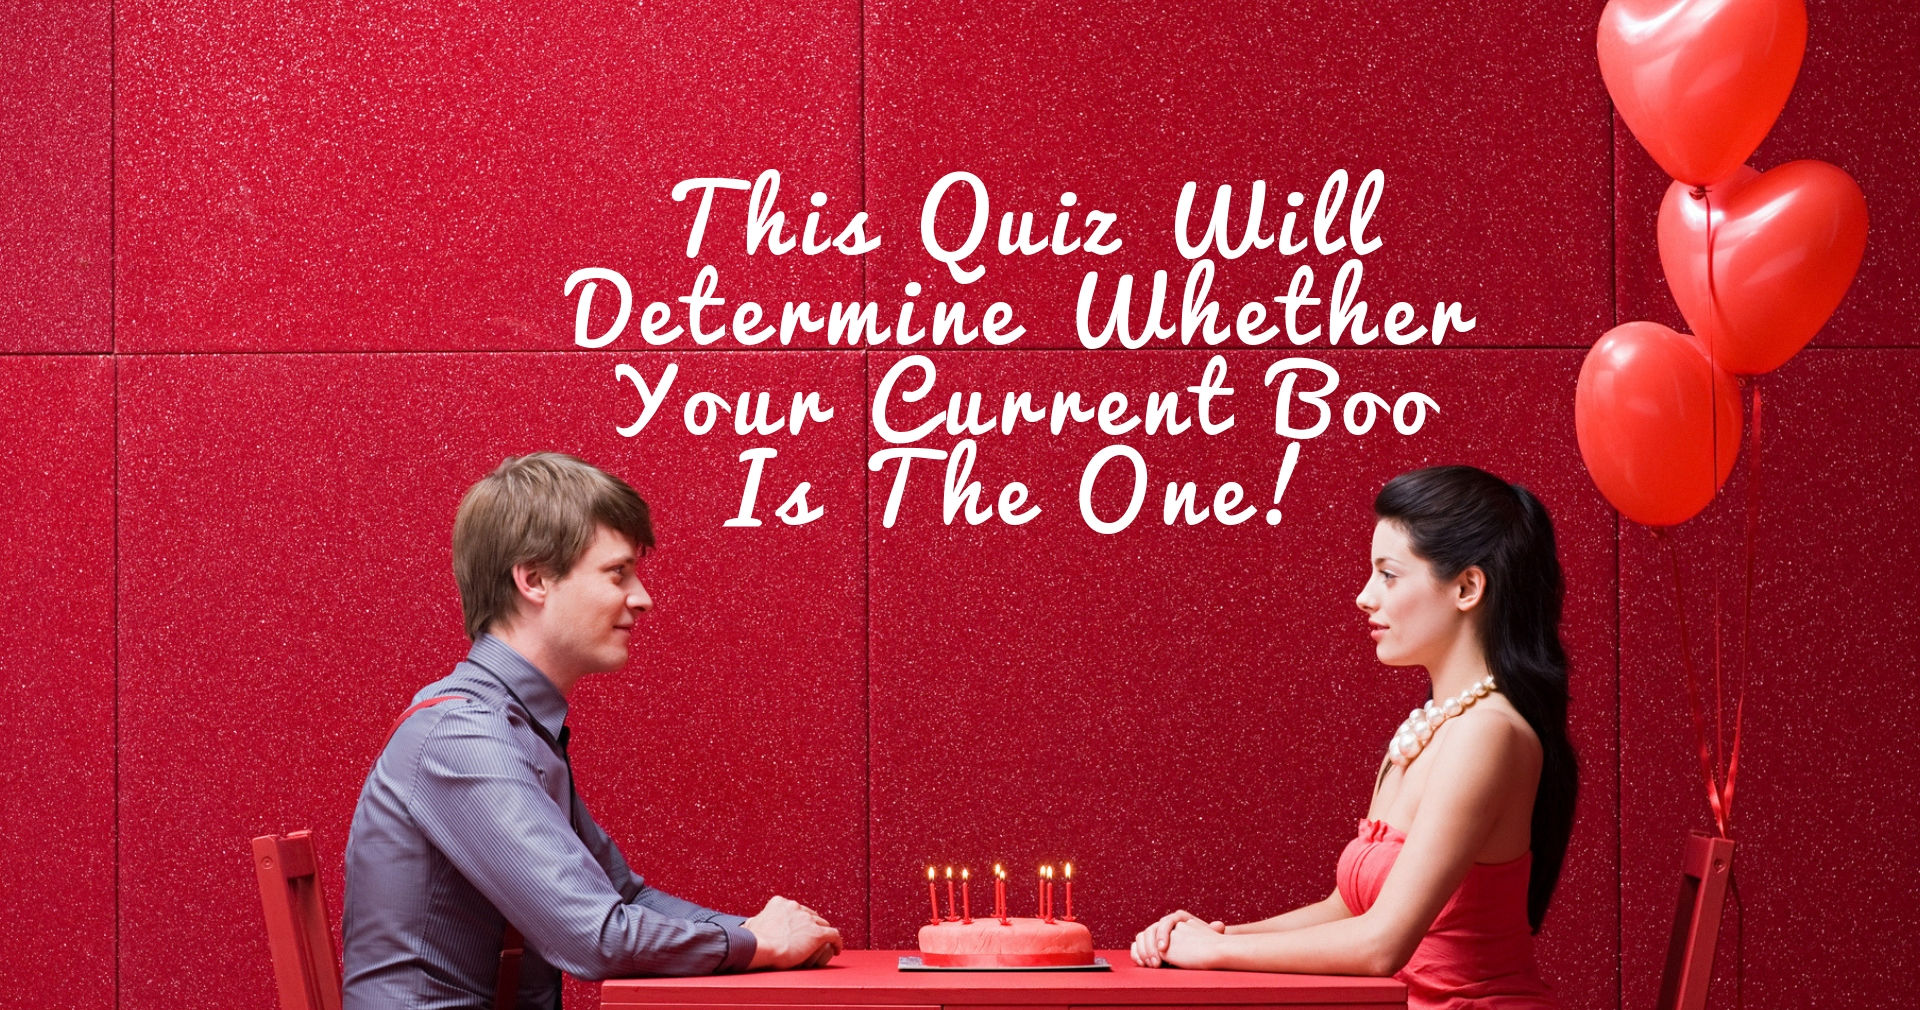 This Quiz Will Determine Whether Your Current Boo Is The One!